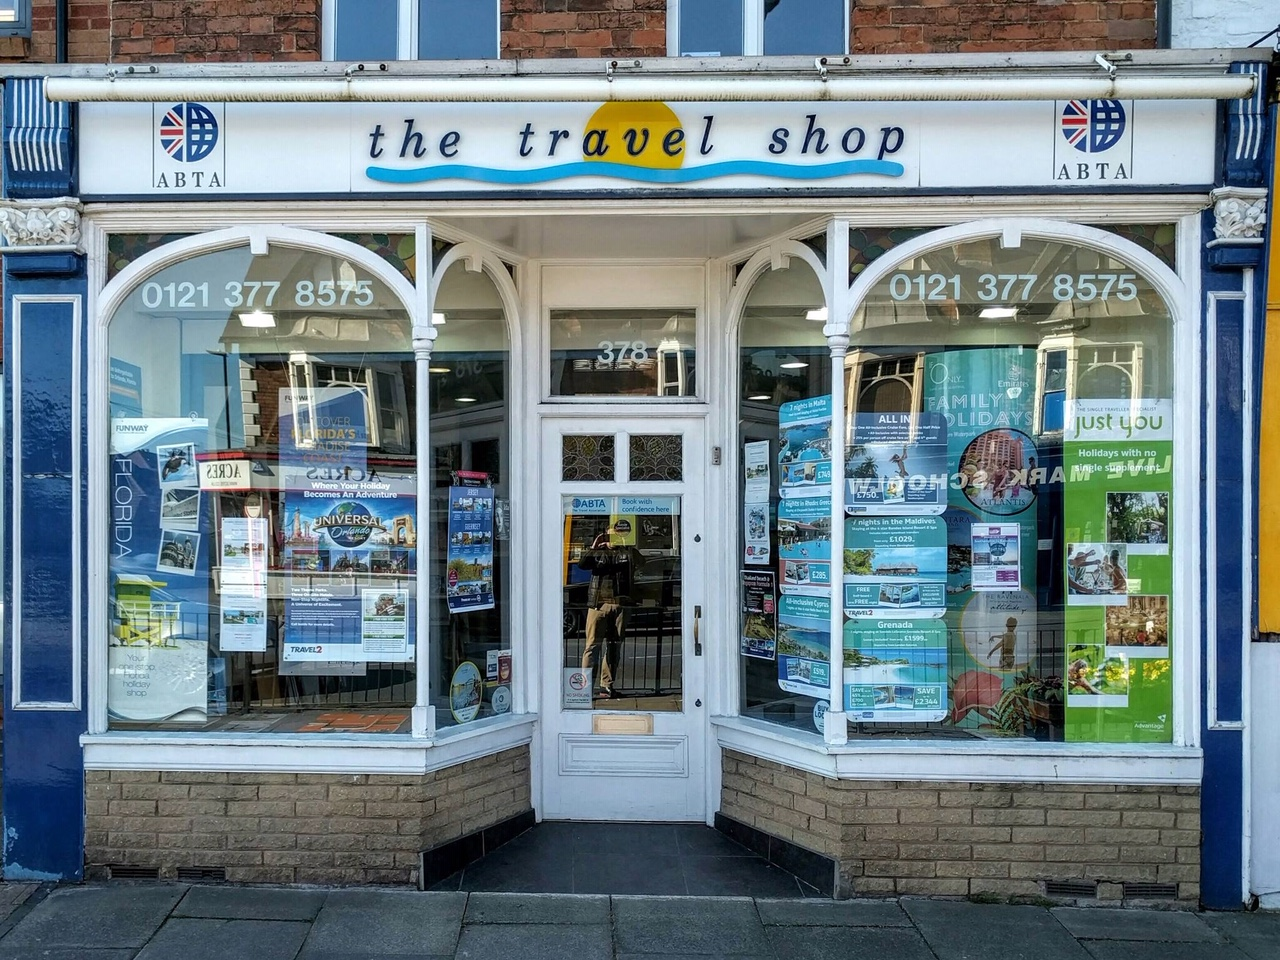 The Travel Shop, West Midlands